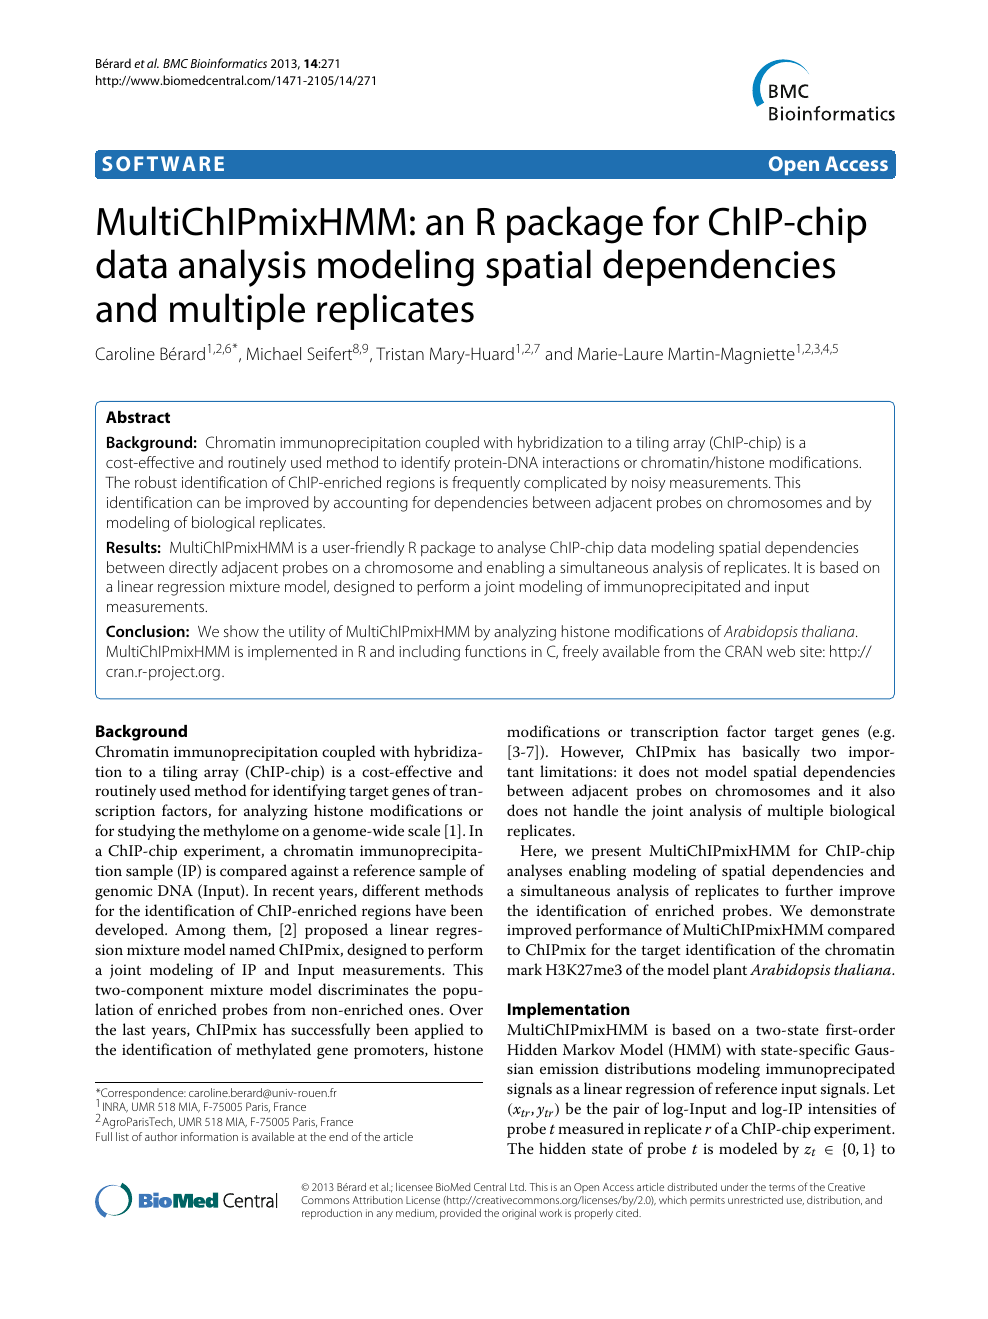 MultiChIPmixHMM: an R package for ChIP-chip data analysis